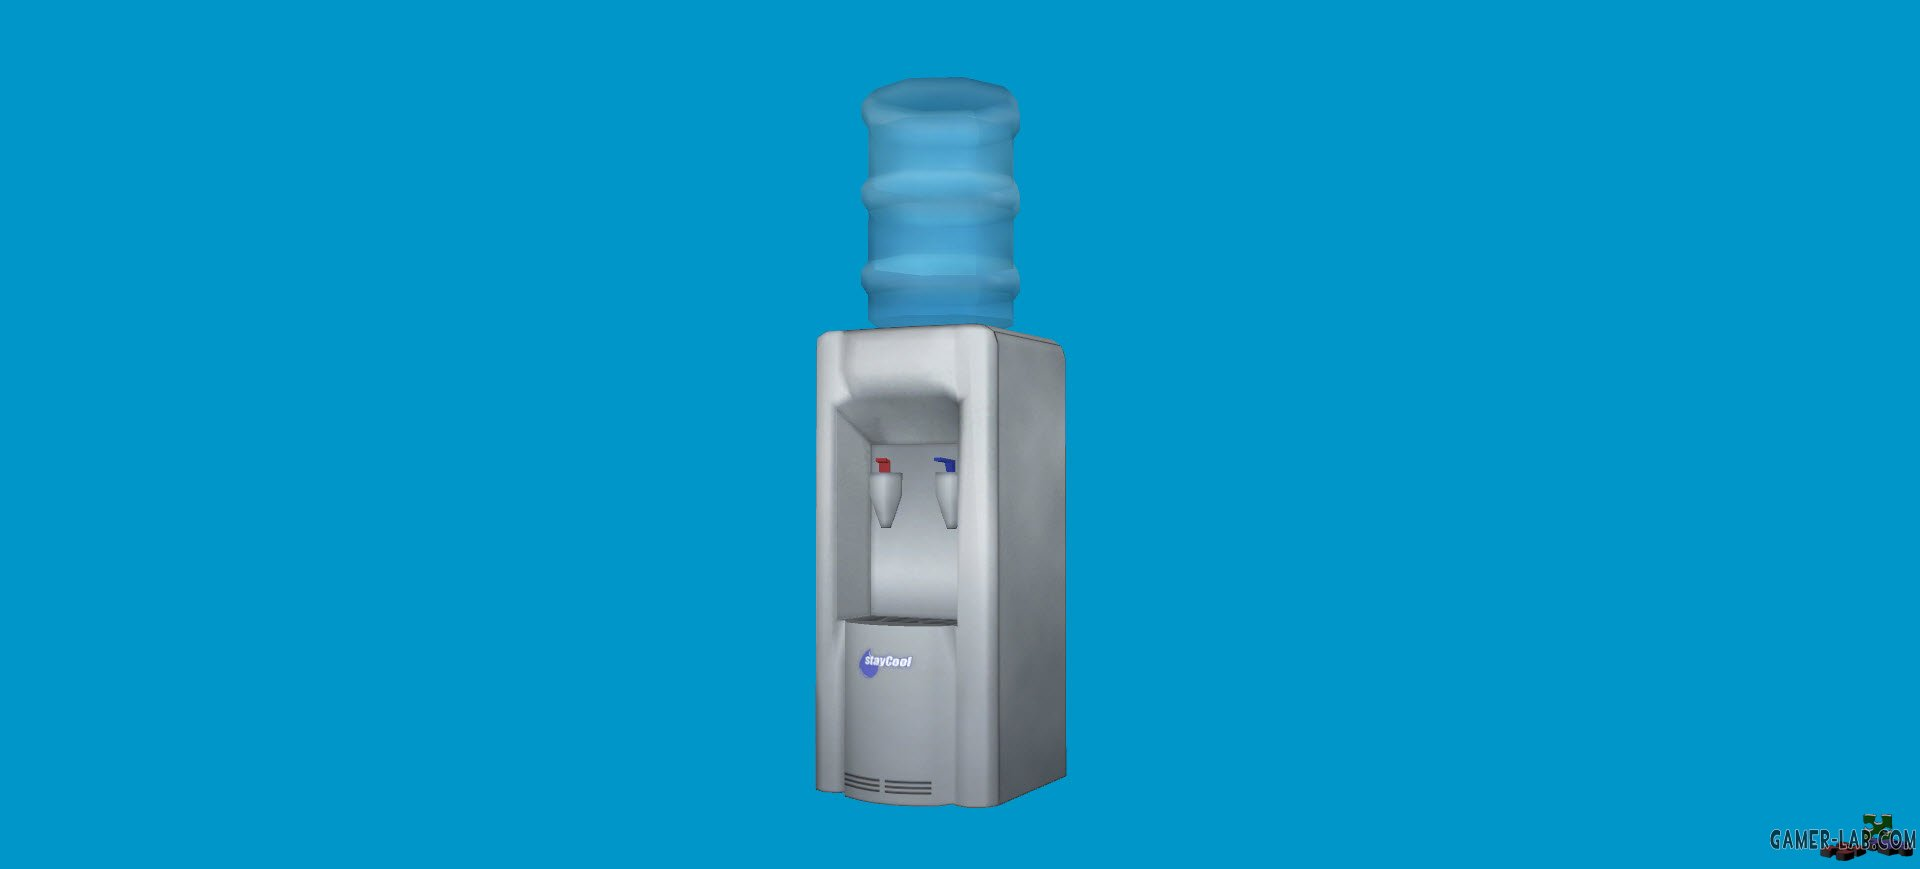 prop_water_cooler